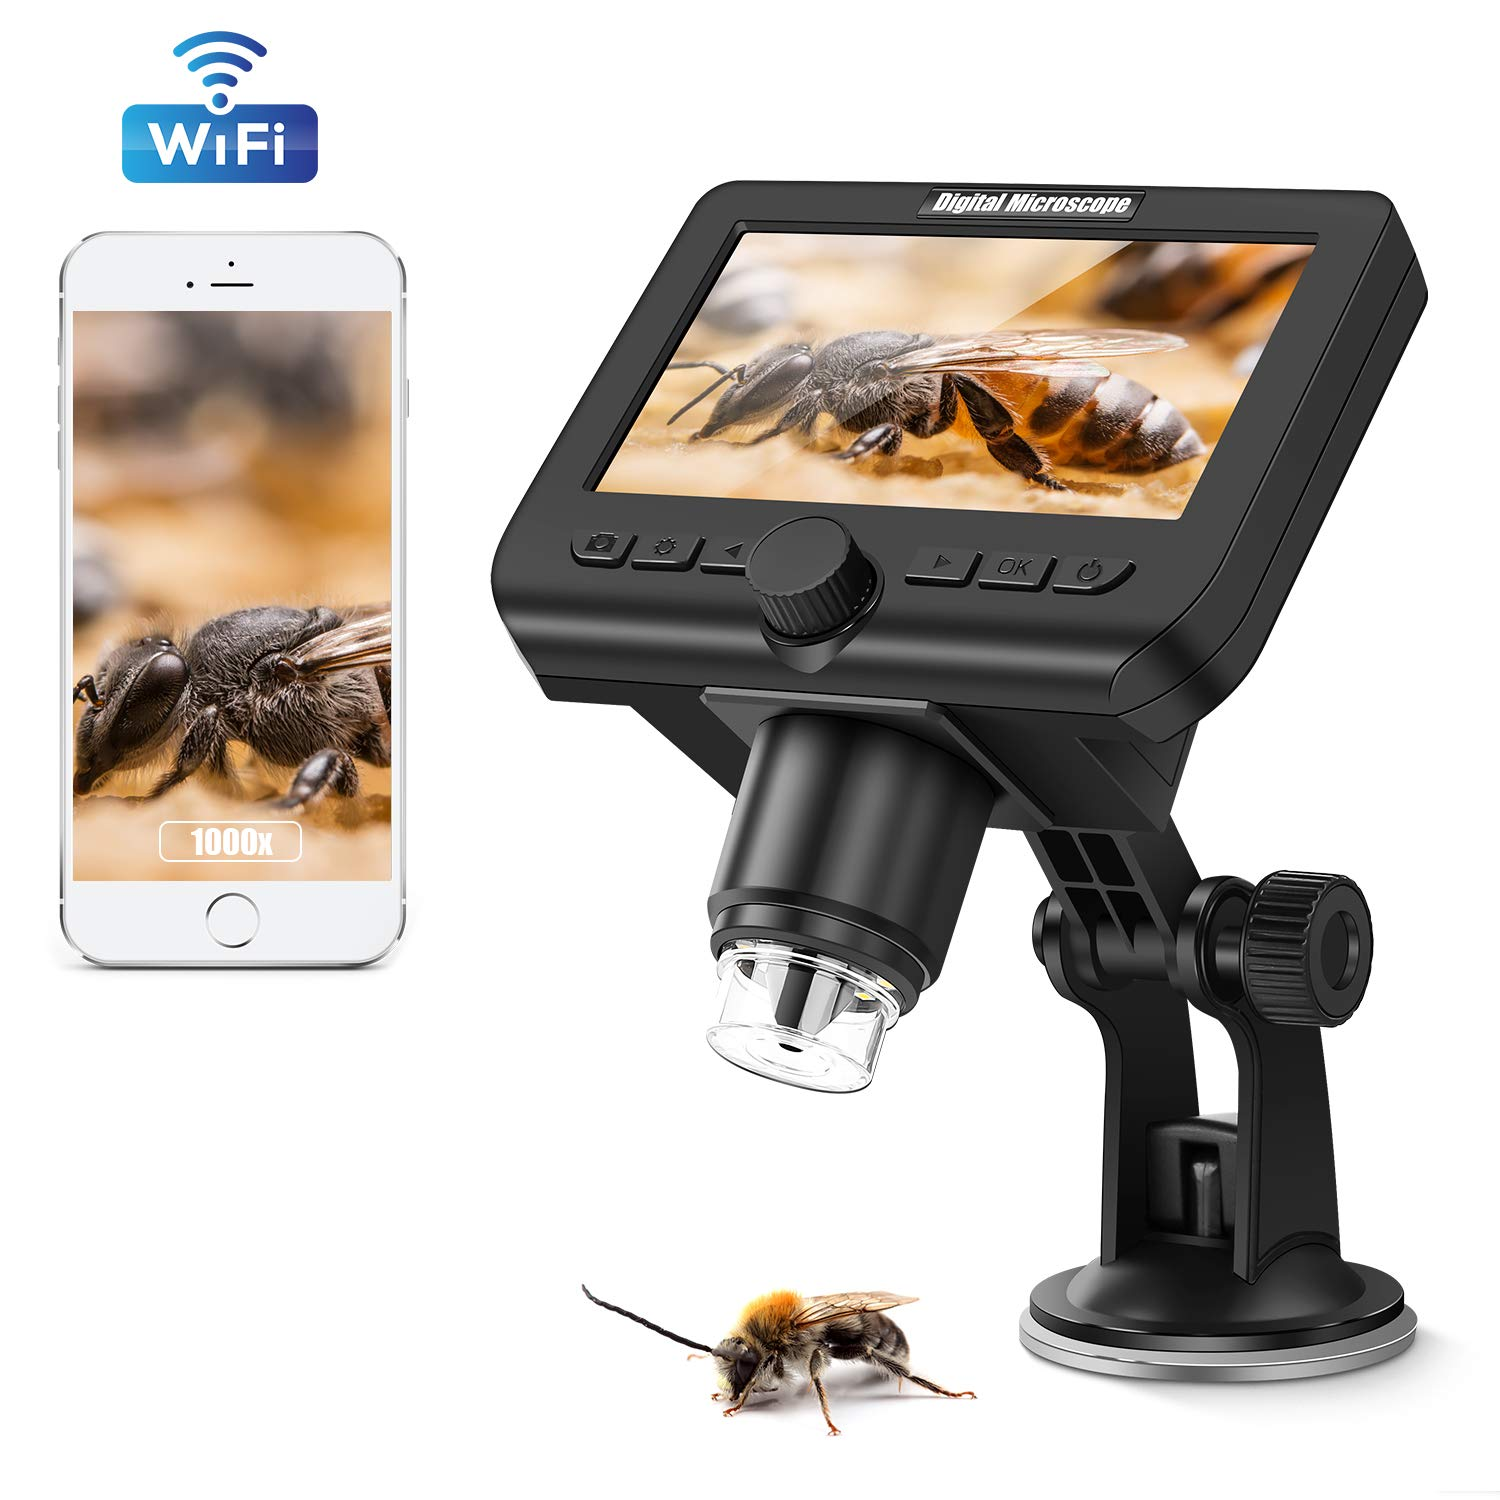 WiFi HD Microscope 1080P 4.3 inch LCD Screen, VSATEN Wireless Digital 50X-1000X Magnification Zoom USB Microscope Camera 2.0 Megapixels 8 Led Camera Video Recorder for iPhone Android Windows Mac Linux